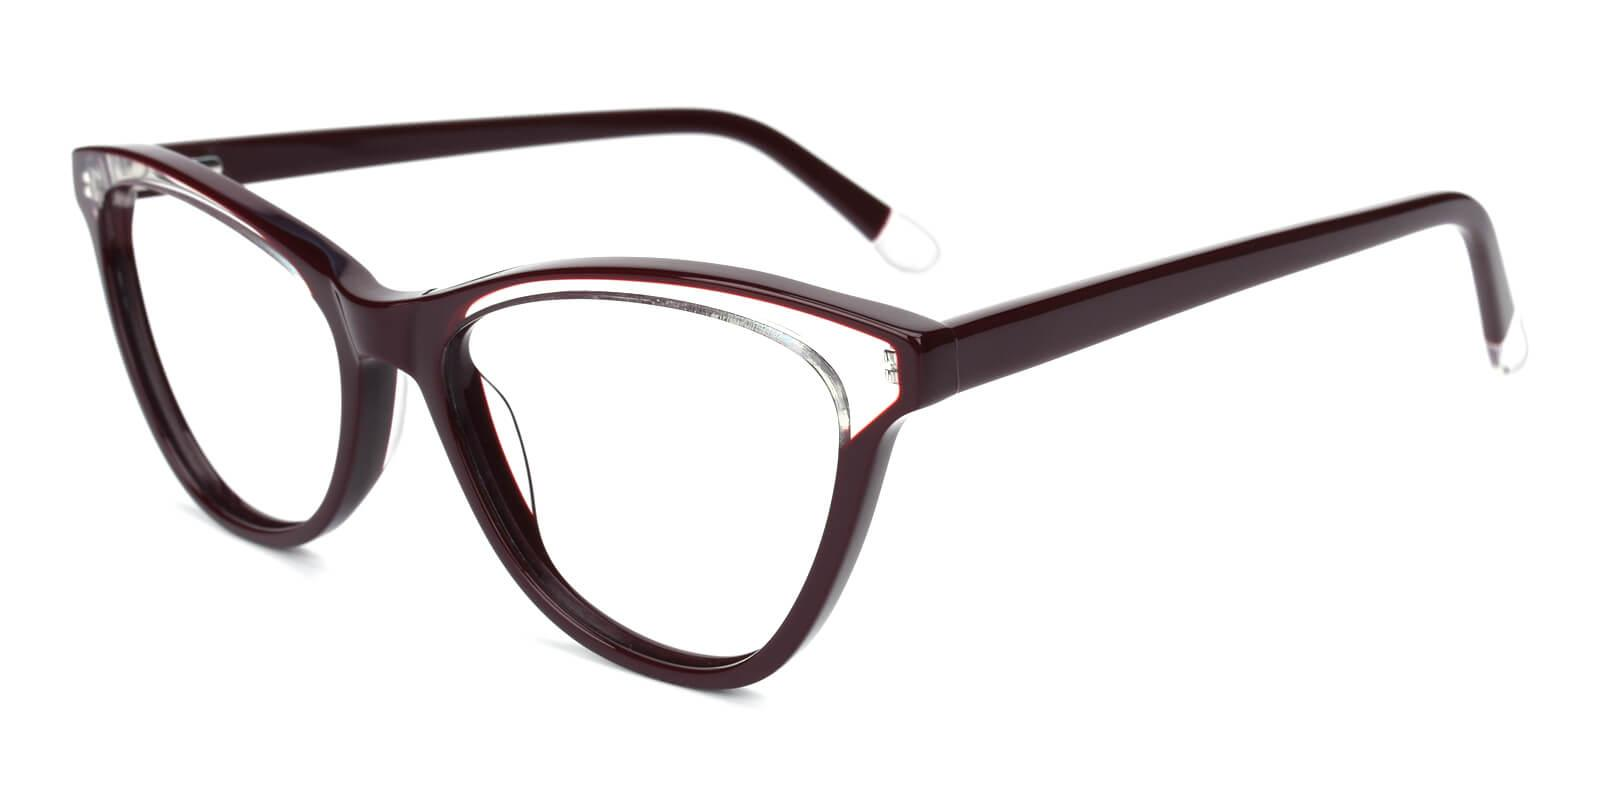 Florencer-Brown-Oval / Cat-Acetate-Eyeglasses-additional1